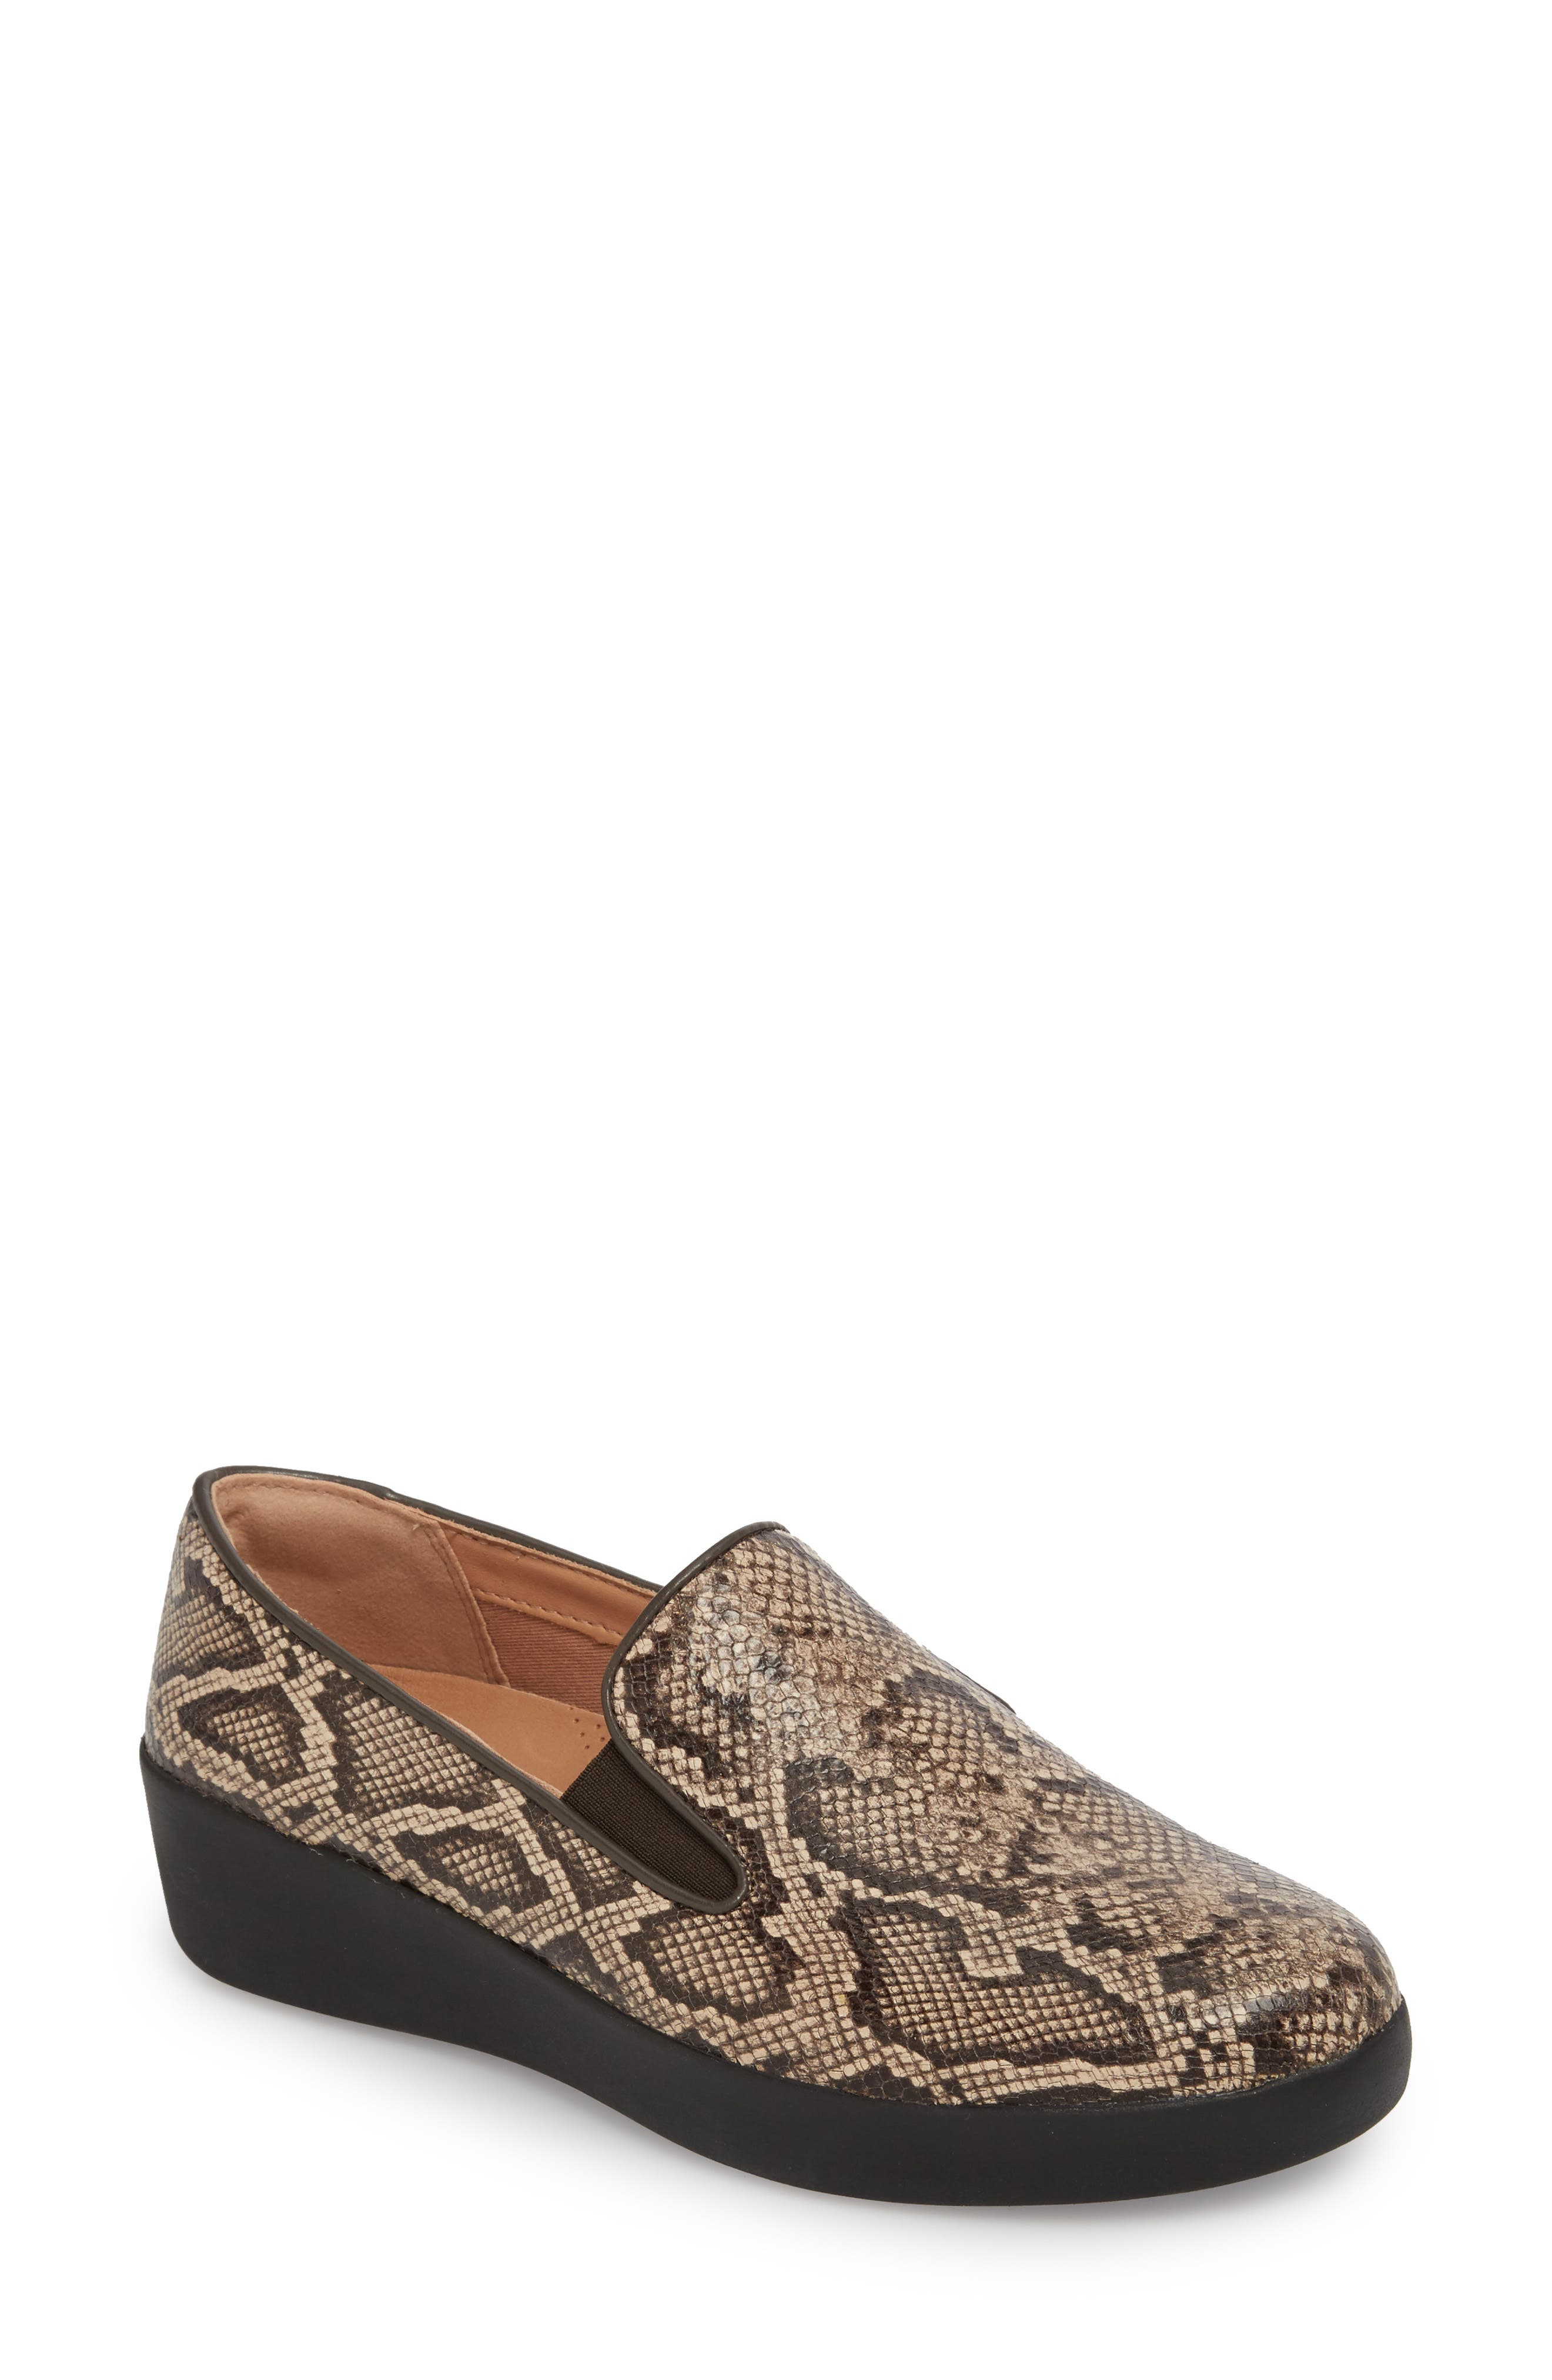 SuperSkate<sup>™</sup> Loafer,                         Main,                         color, Taupe Snake Print Leather